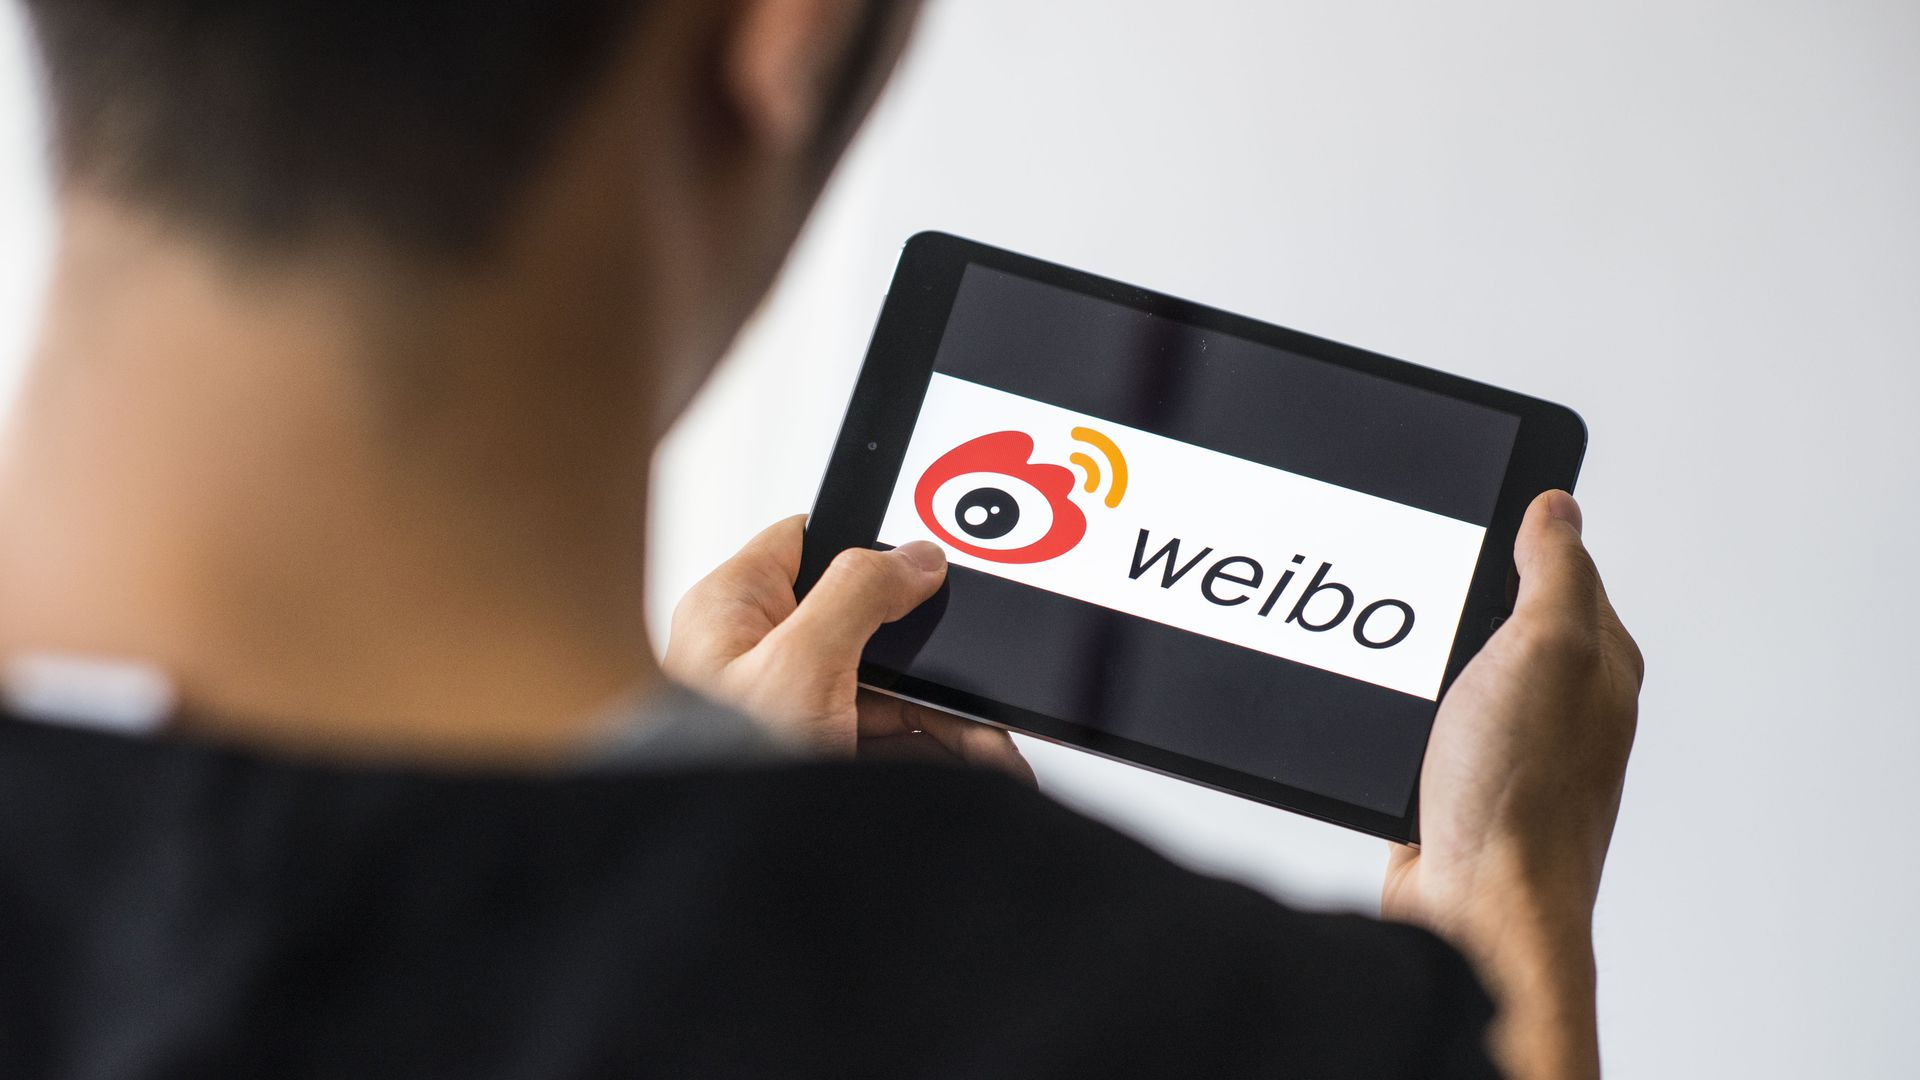 Weibo on an iPad